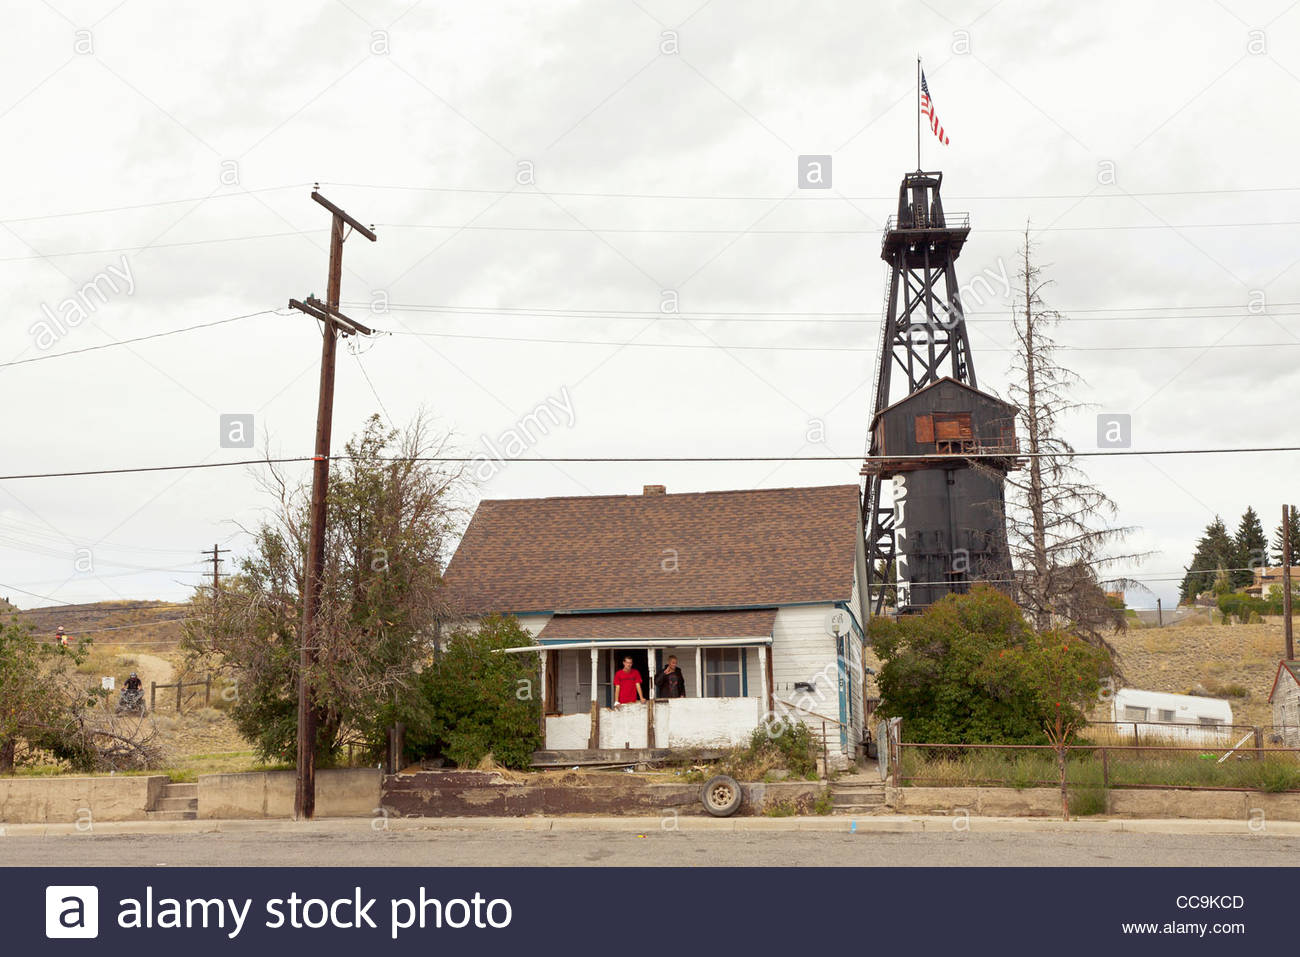 Two people in front of a rural American house, Butte, Montana, United States - Stock Image